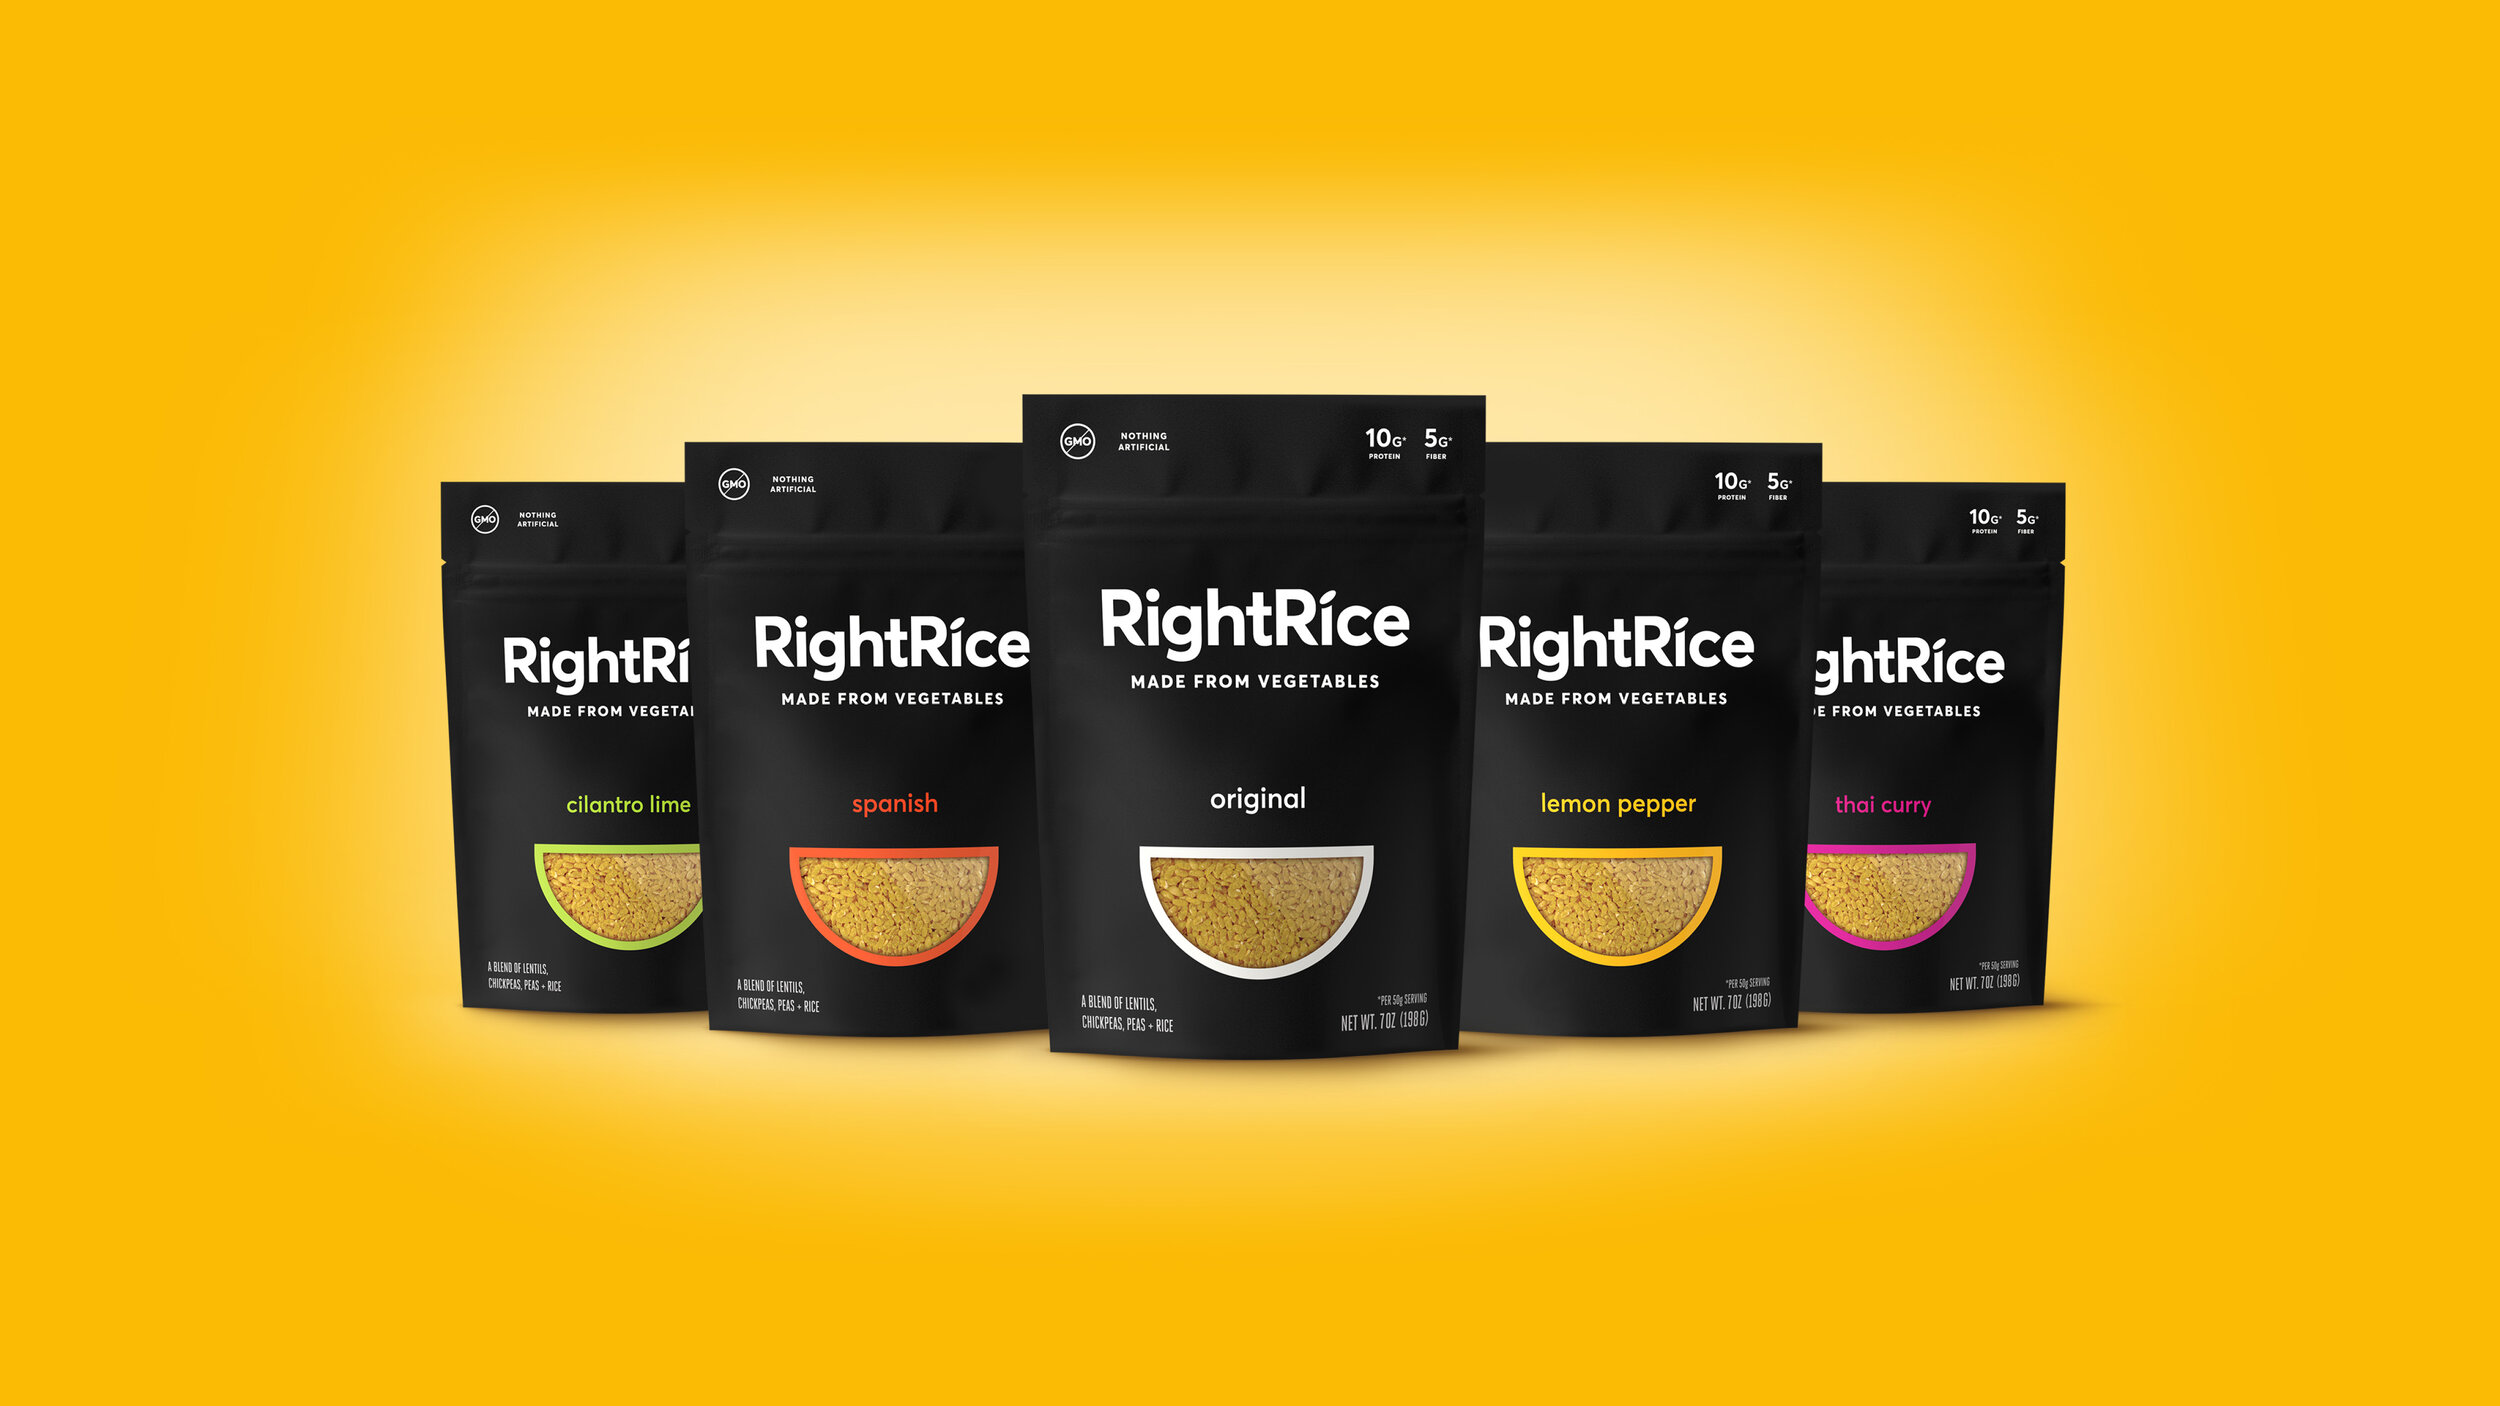 The dominant black package and its stark simplicity was designed to break the norms of the rice aisle. The black brings a premium, culinary edge while the cut out window provides transparency to the product, and acts as both a smile and a bowl full of rice.